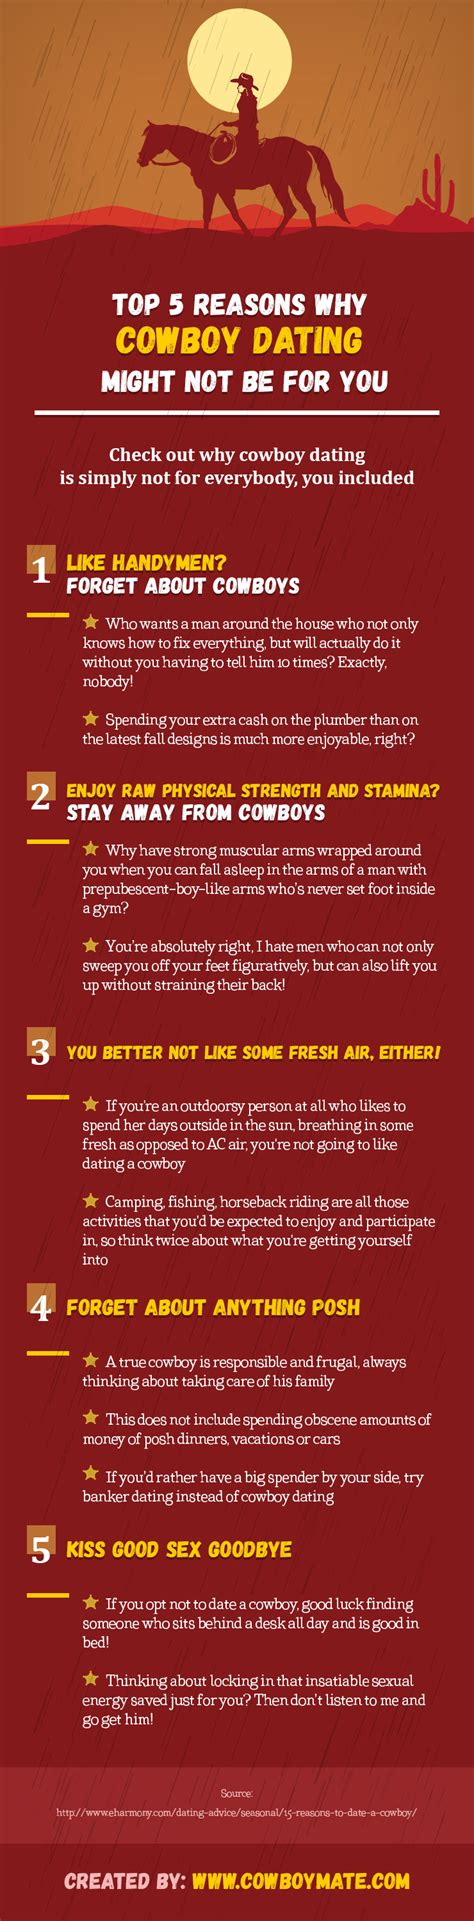 5 Reasons To Not Date by Top 5 Reasons Why Cowboy Dating Might Not Be For You